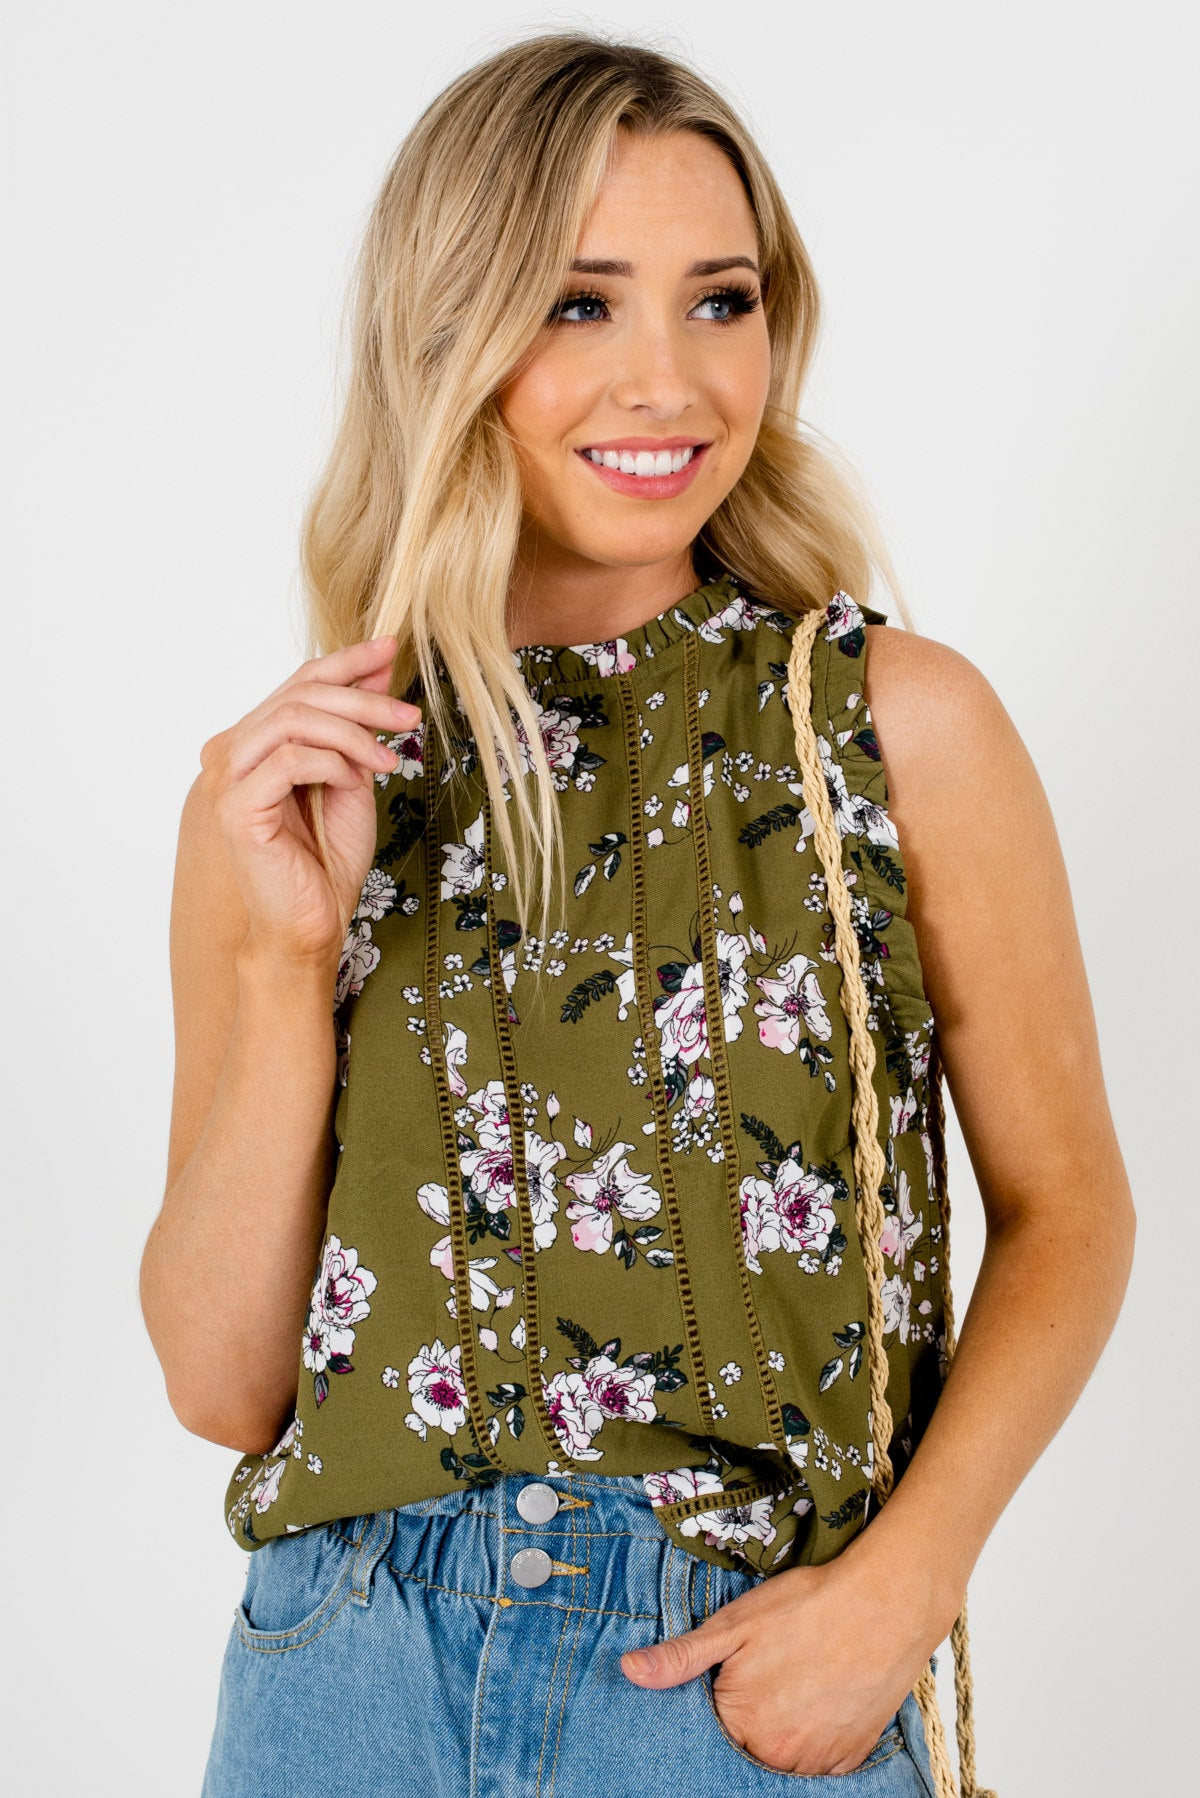 Olive Green Floral Patterned Boutique Blouses for Women